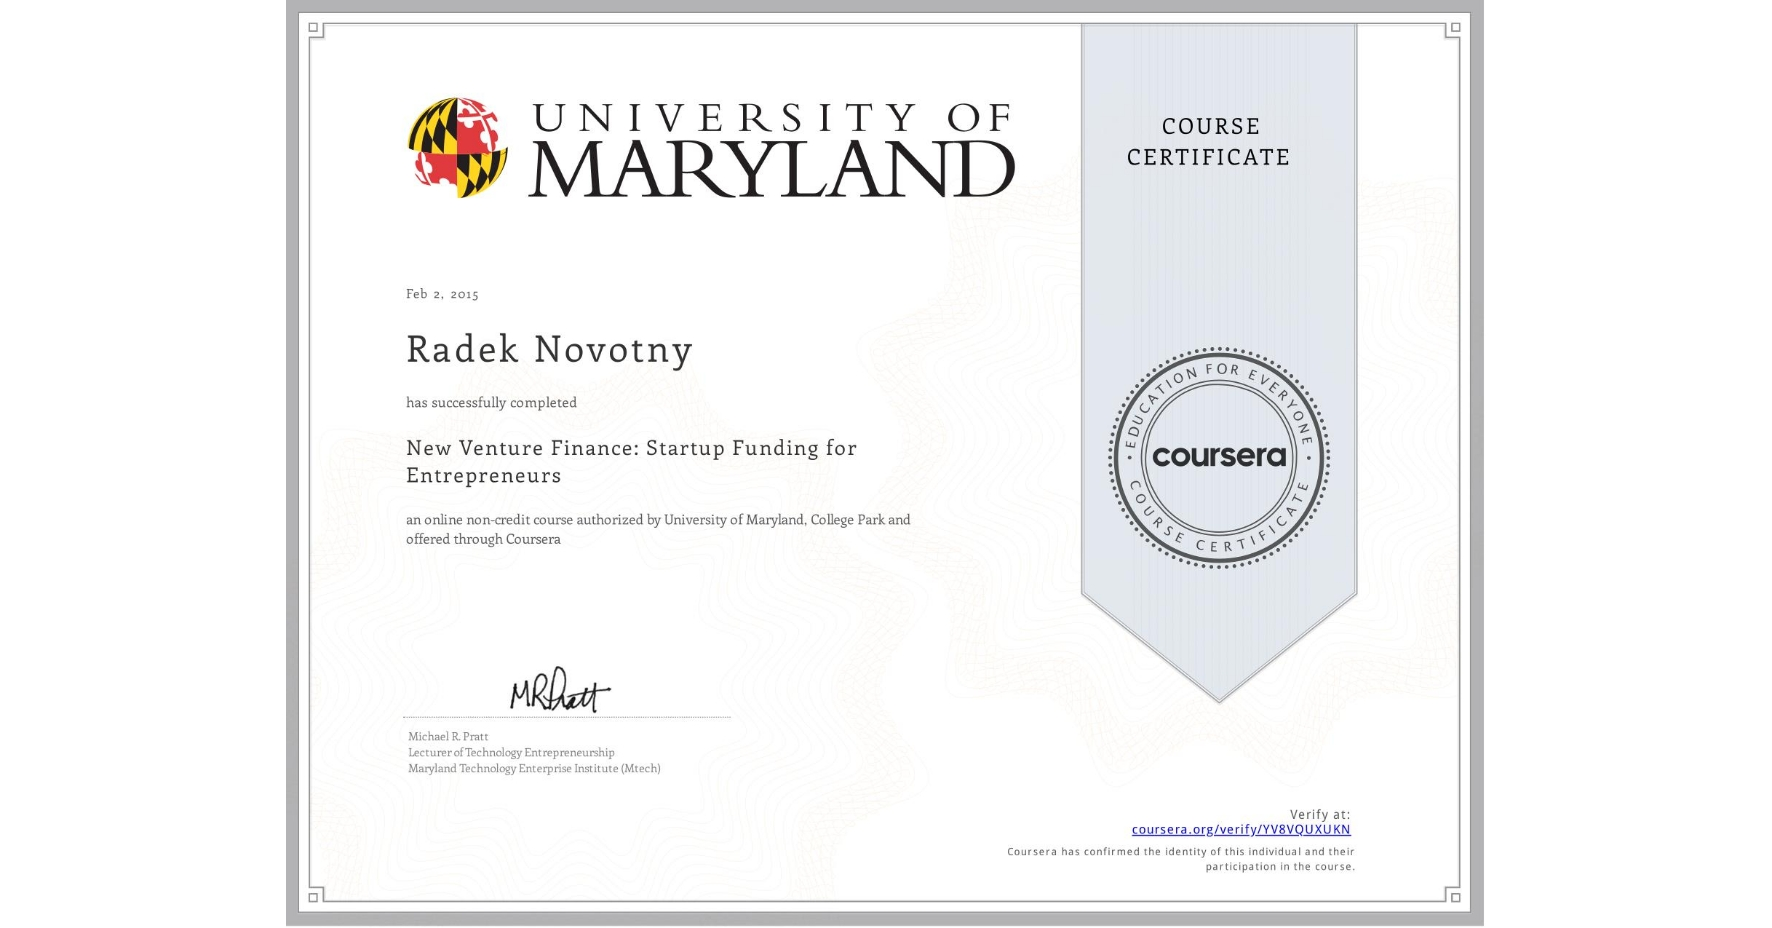 View certificate for Radek Novotny, New Venture Finance: Startup Funding for Entrepreneurs, an online non-credit course authorized by University of Maryland, College Park and offered through Coursera